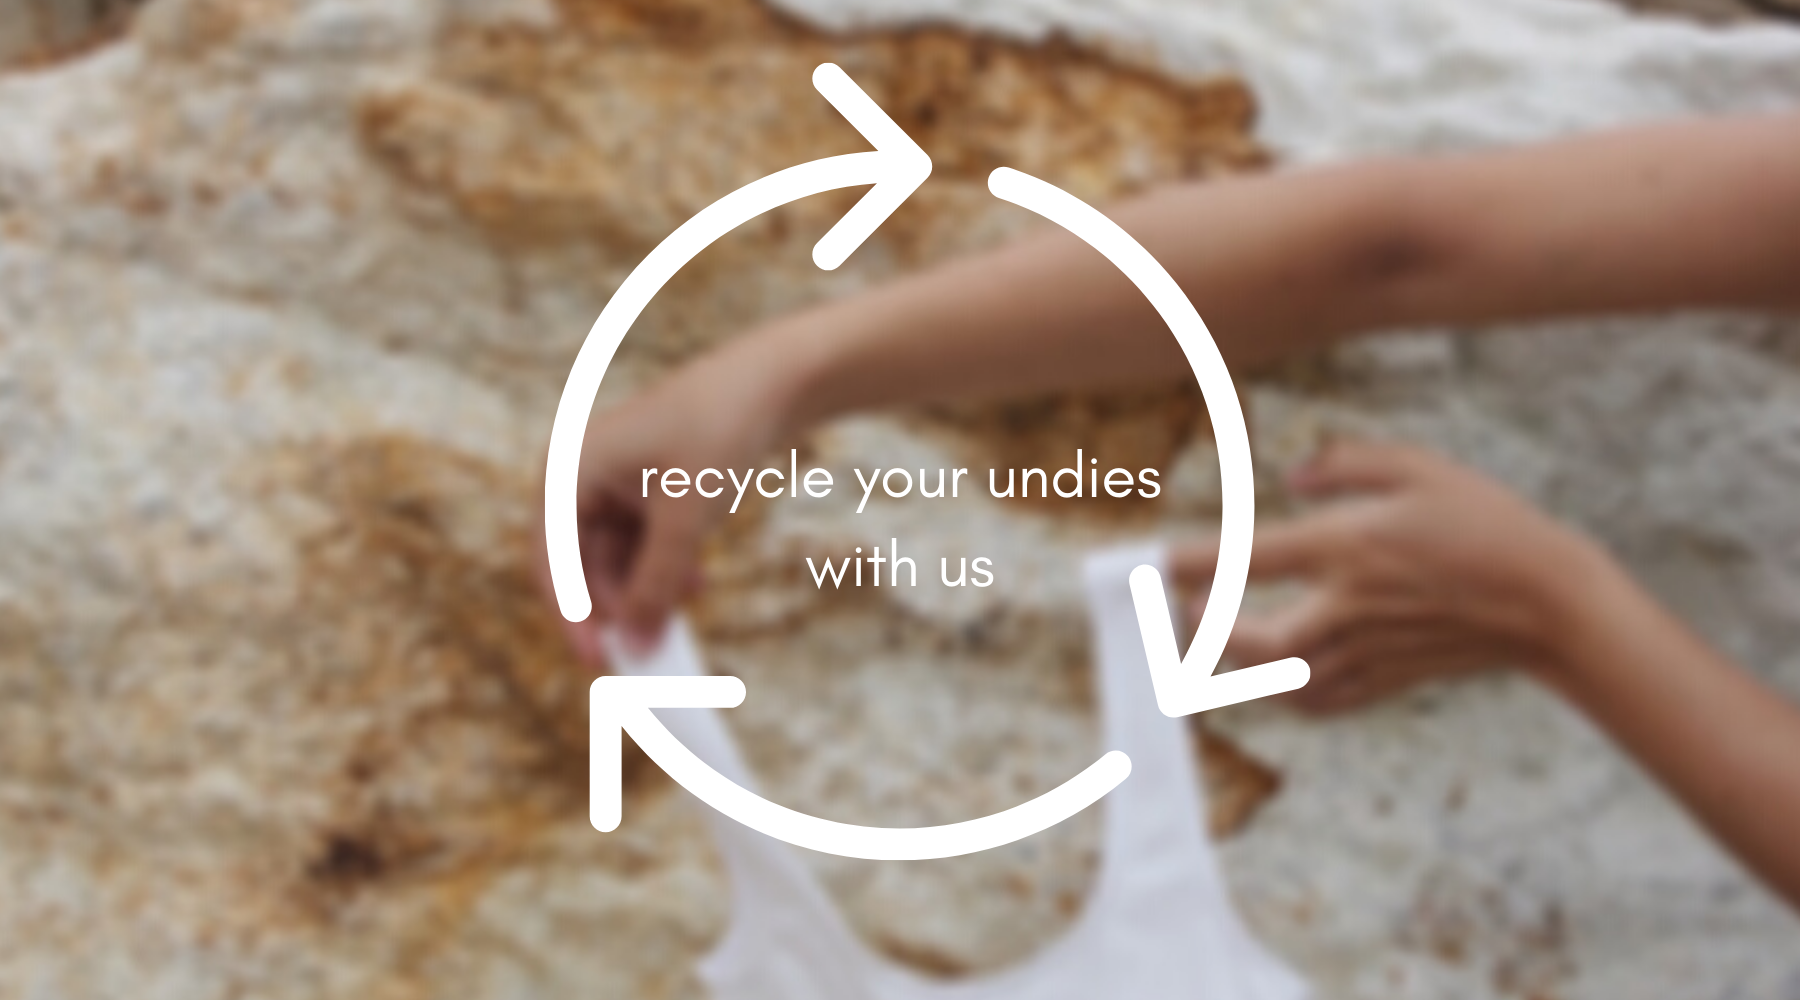 recycle your underwear with bare